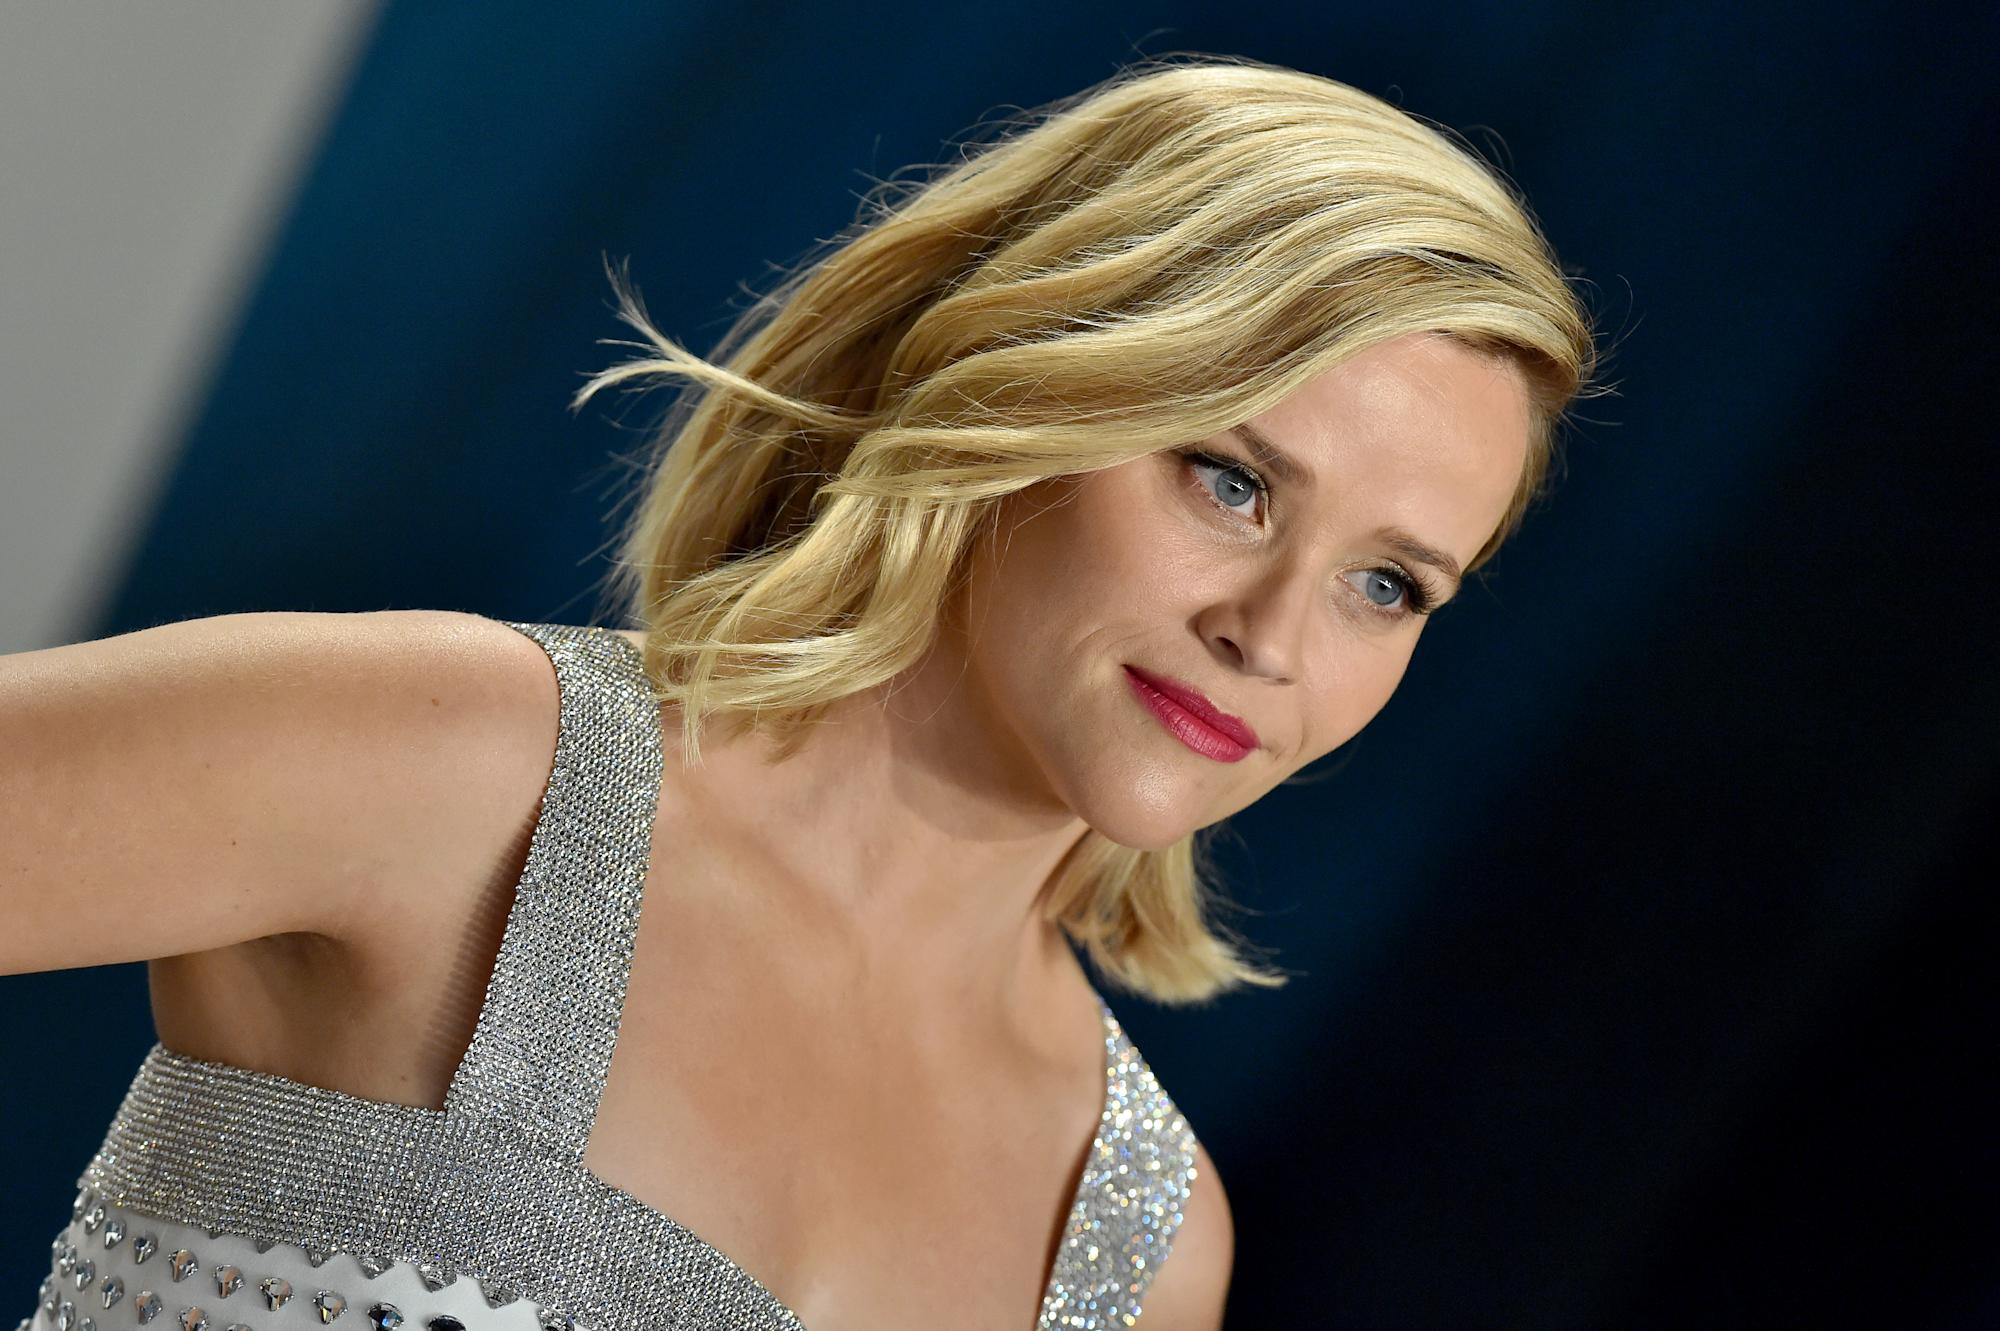 Reese Witherspoon says she spent 7 years in therapy: 'It changed my whole life'